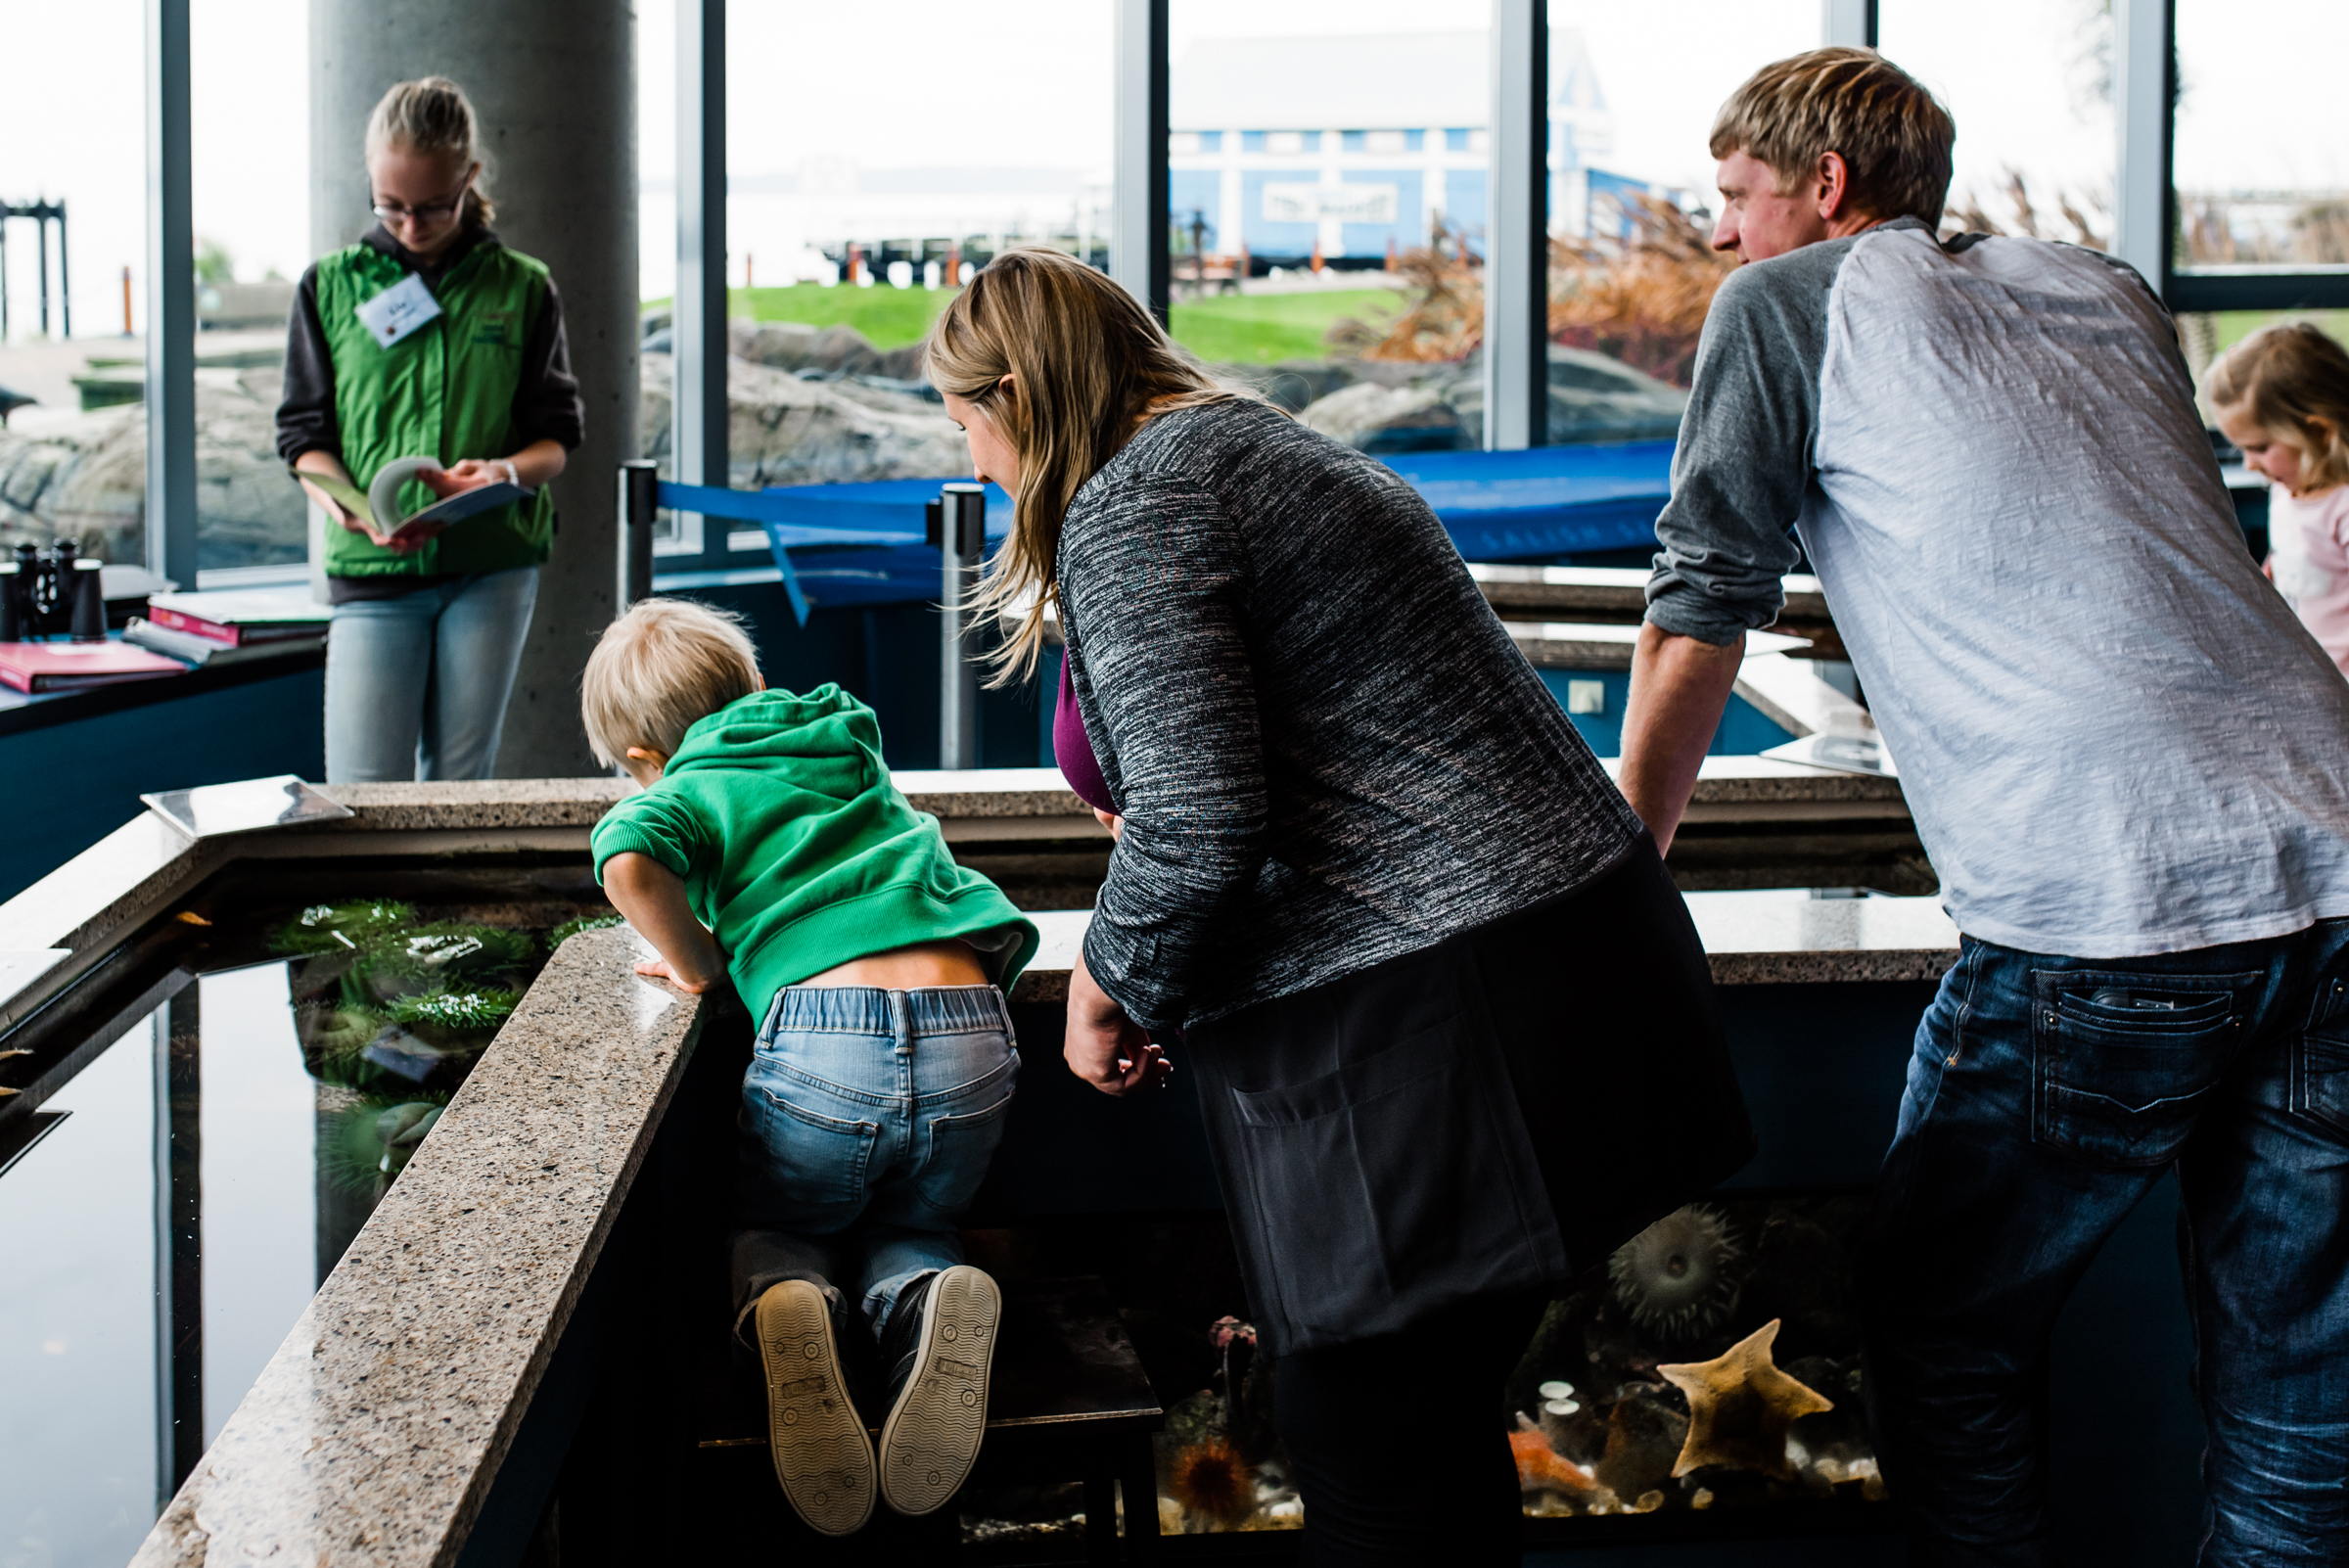 Nicola_Reiersen_Photography_Victoria_BC_Aquarium_Maternity_Session (140).jpg